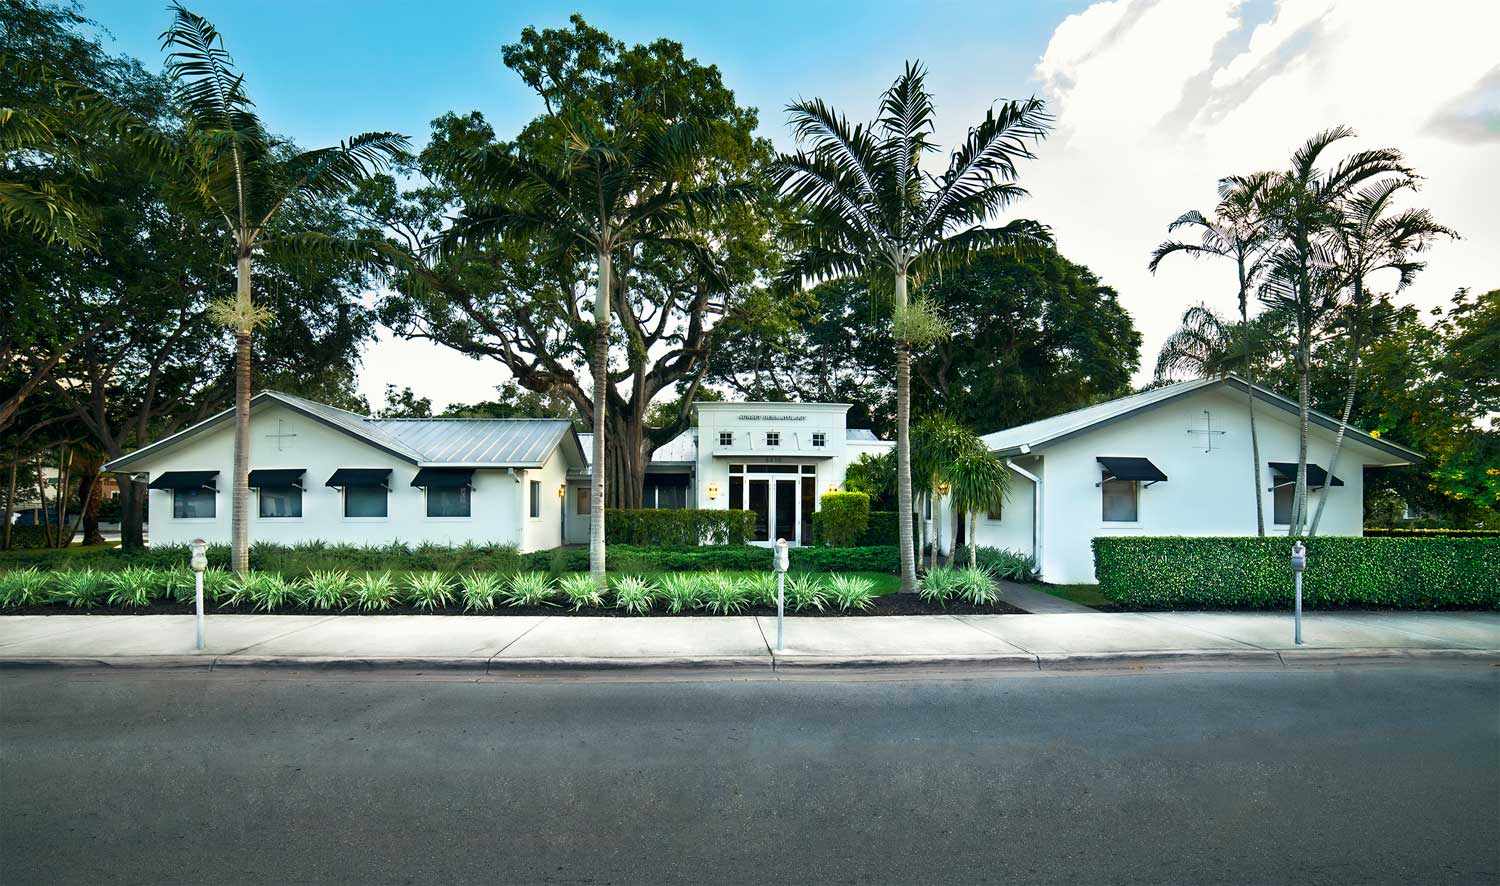 Exterior establishment photo in South Miami, Florida for Sunset Dermatology.